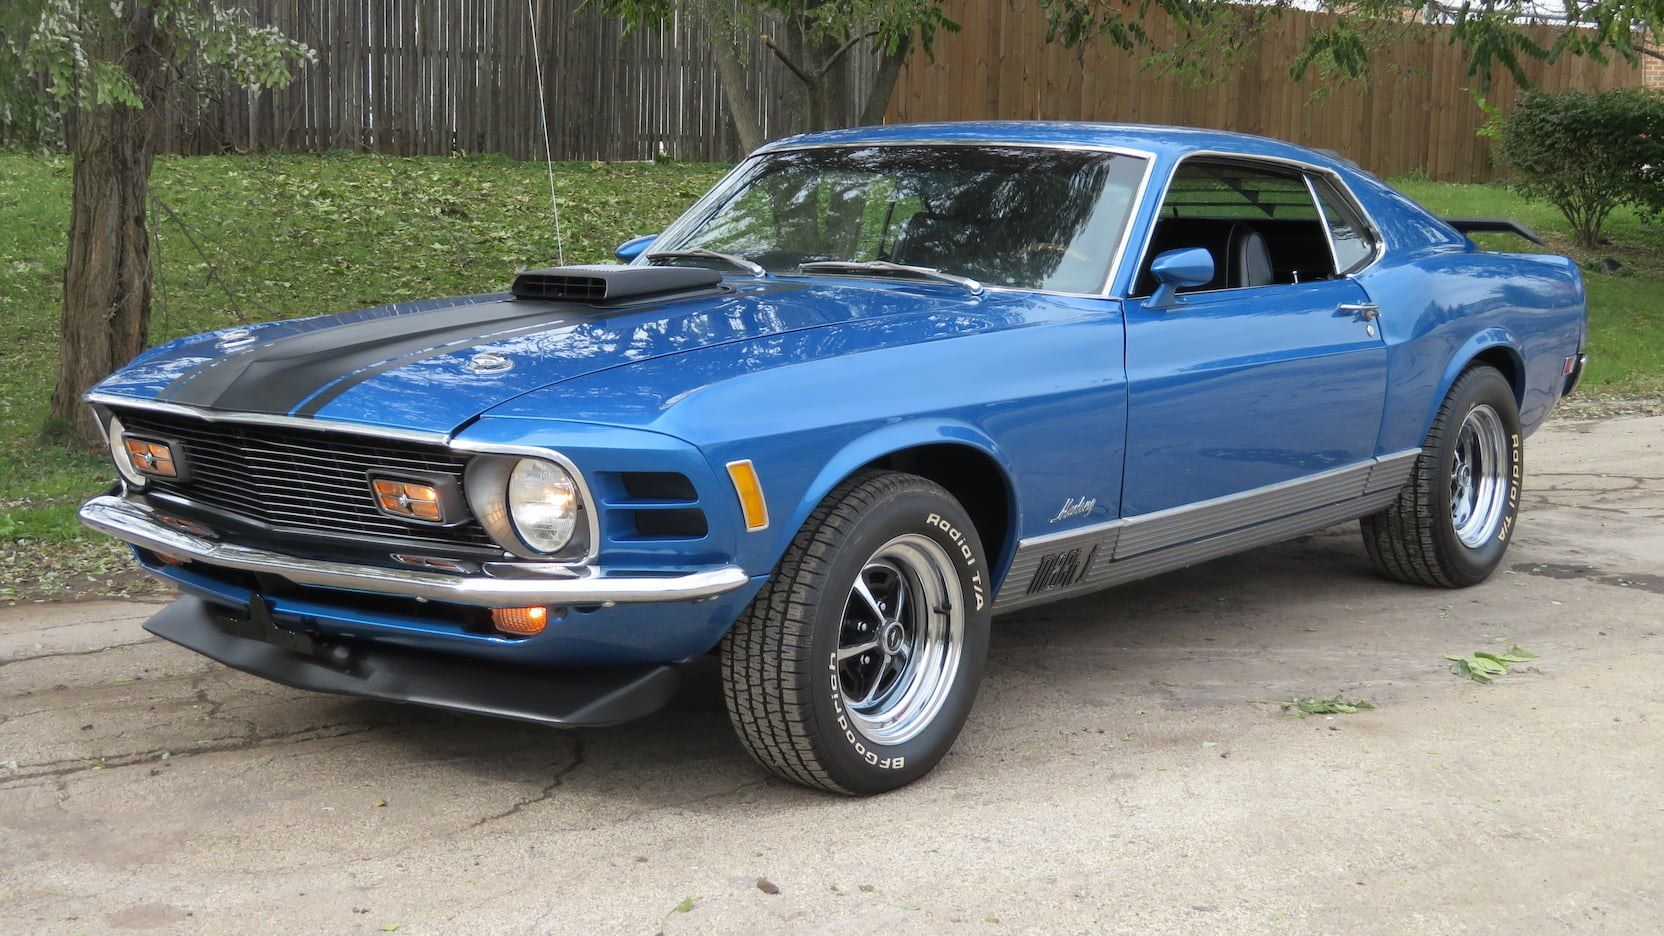 1970 Ford Mustang Mach 1 Classic Cars